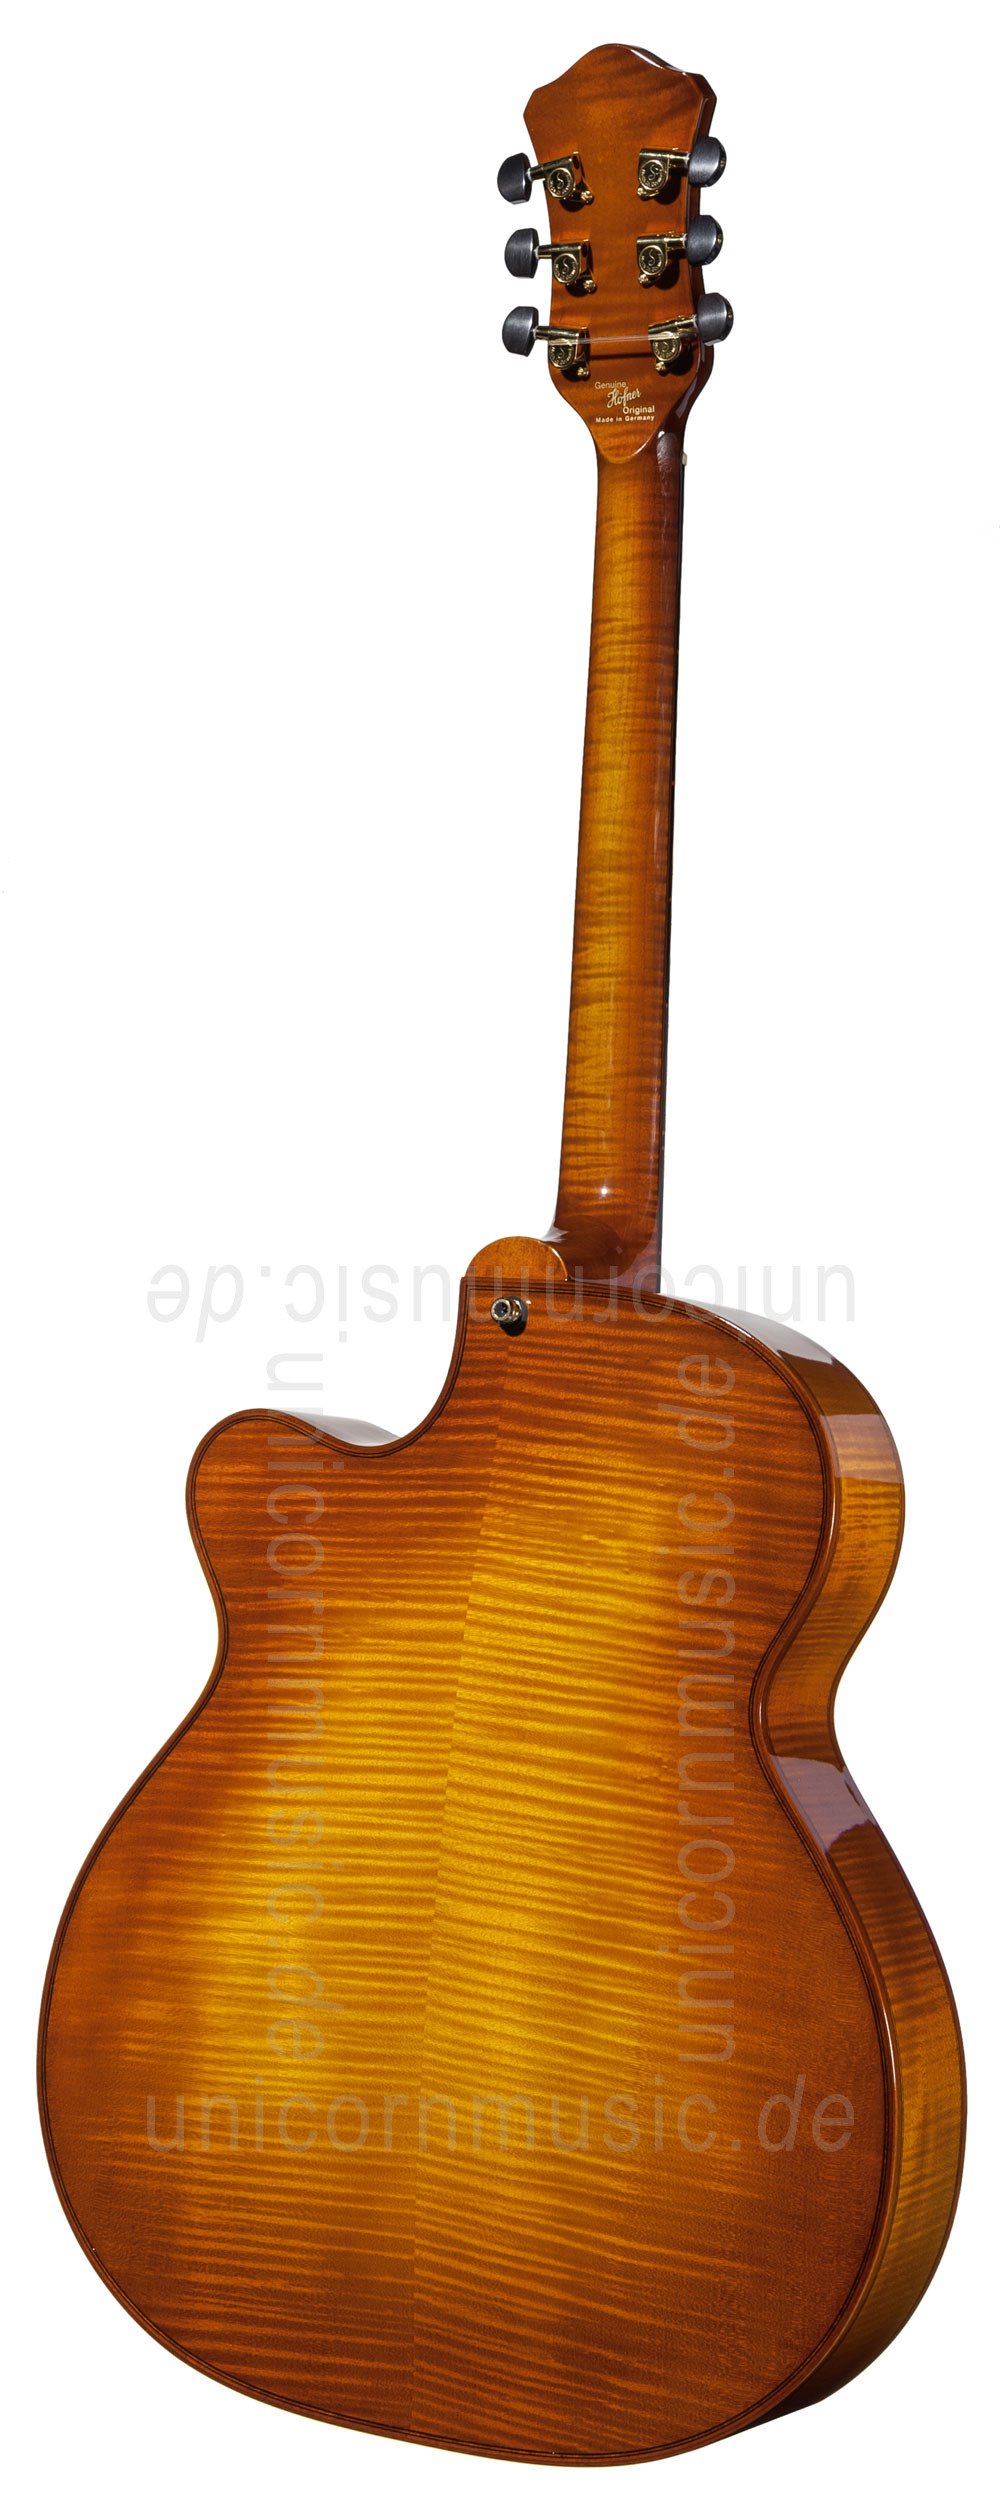 to article description / price Full-Resonance Archtop Jazz Guitar HOFNER CHANCELLOR HC-V-0 Gold Label + hardscase - Schellack - all solid